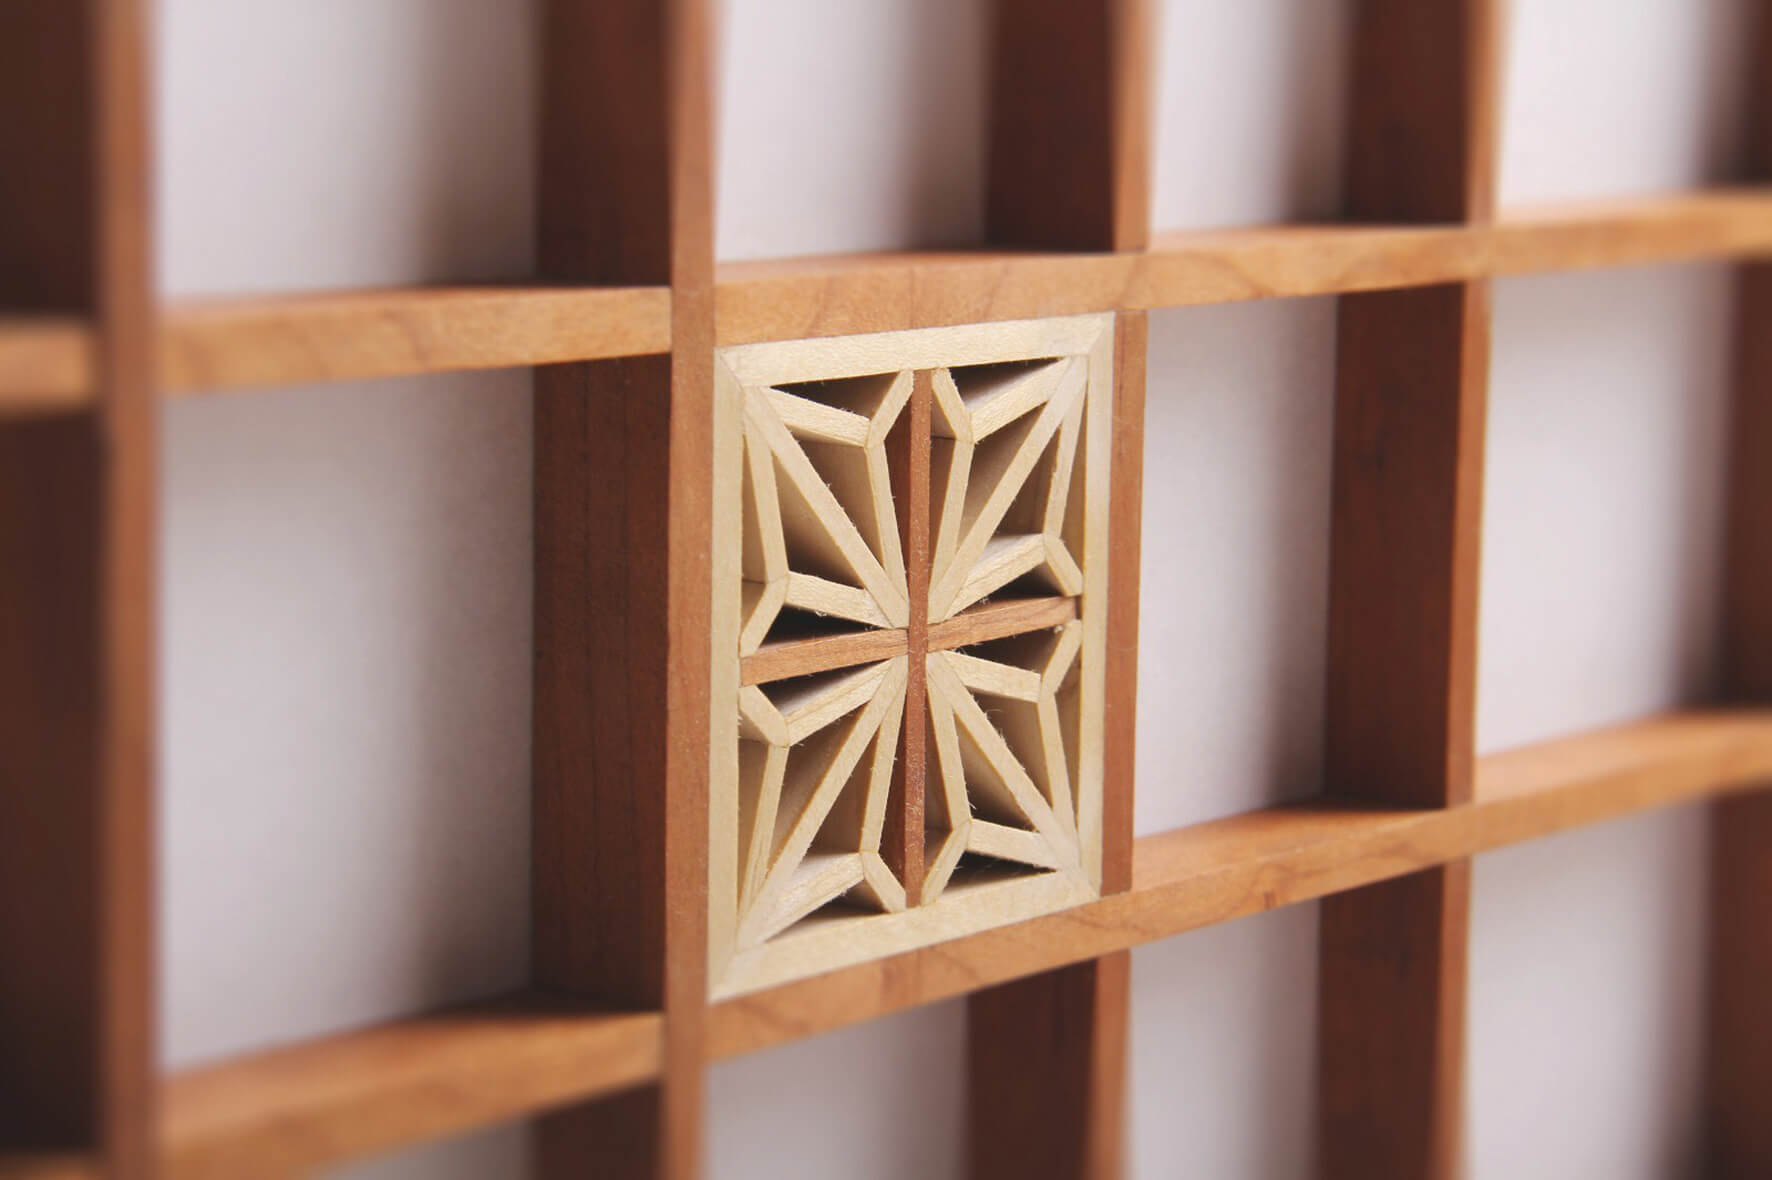 Wooden detail of fine woodworking.